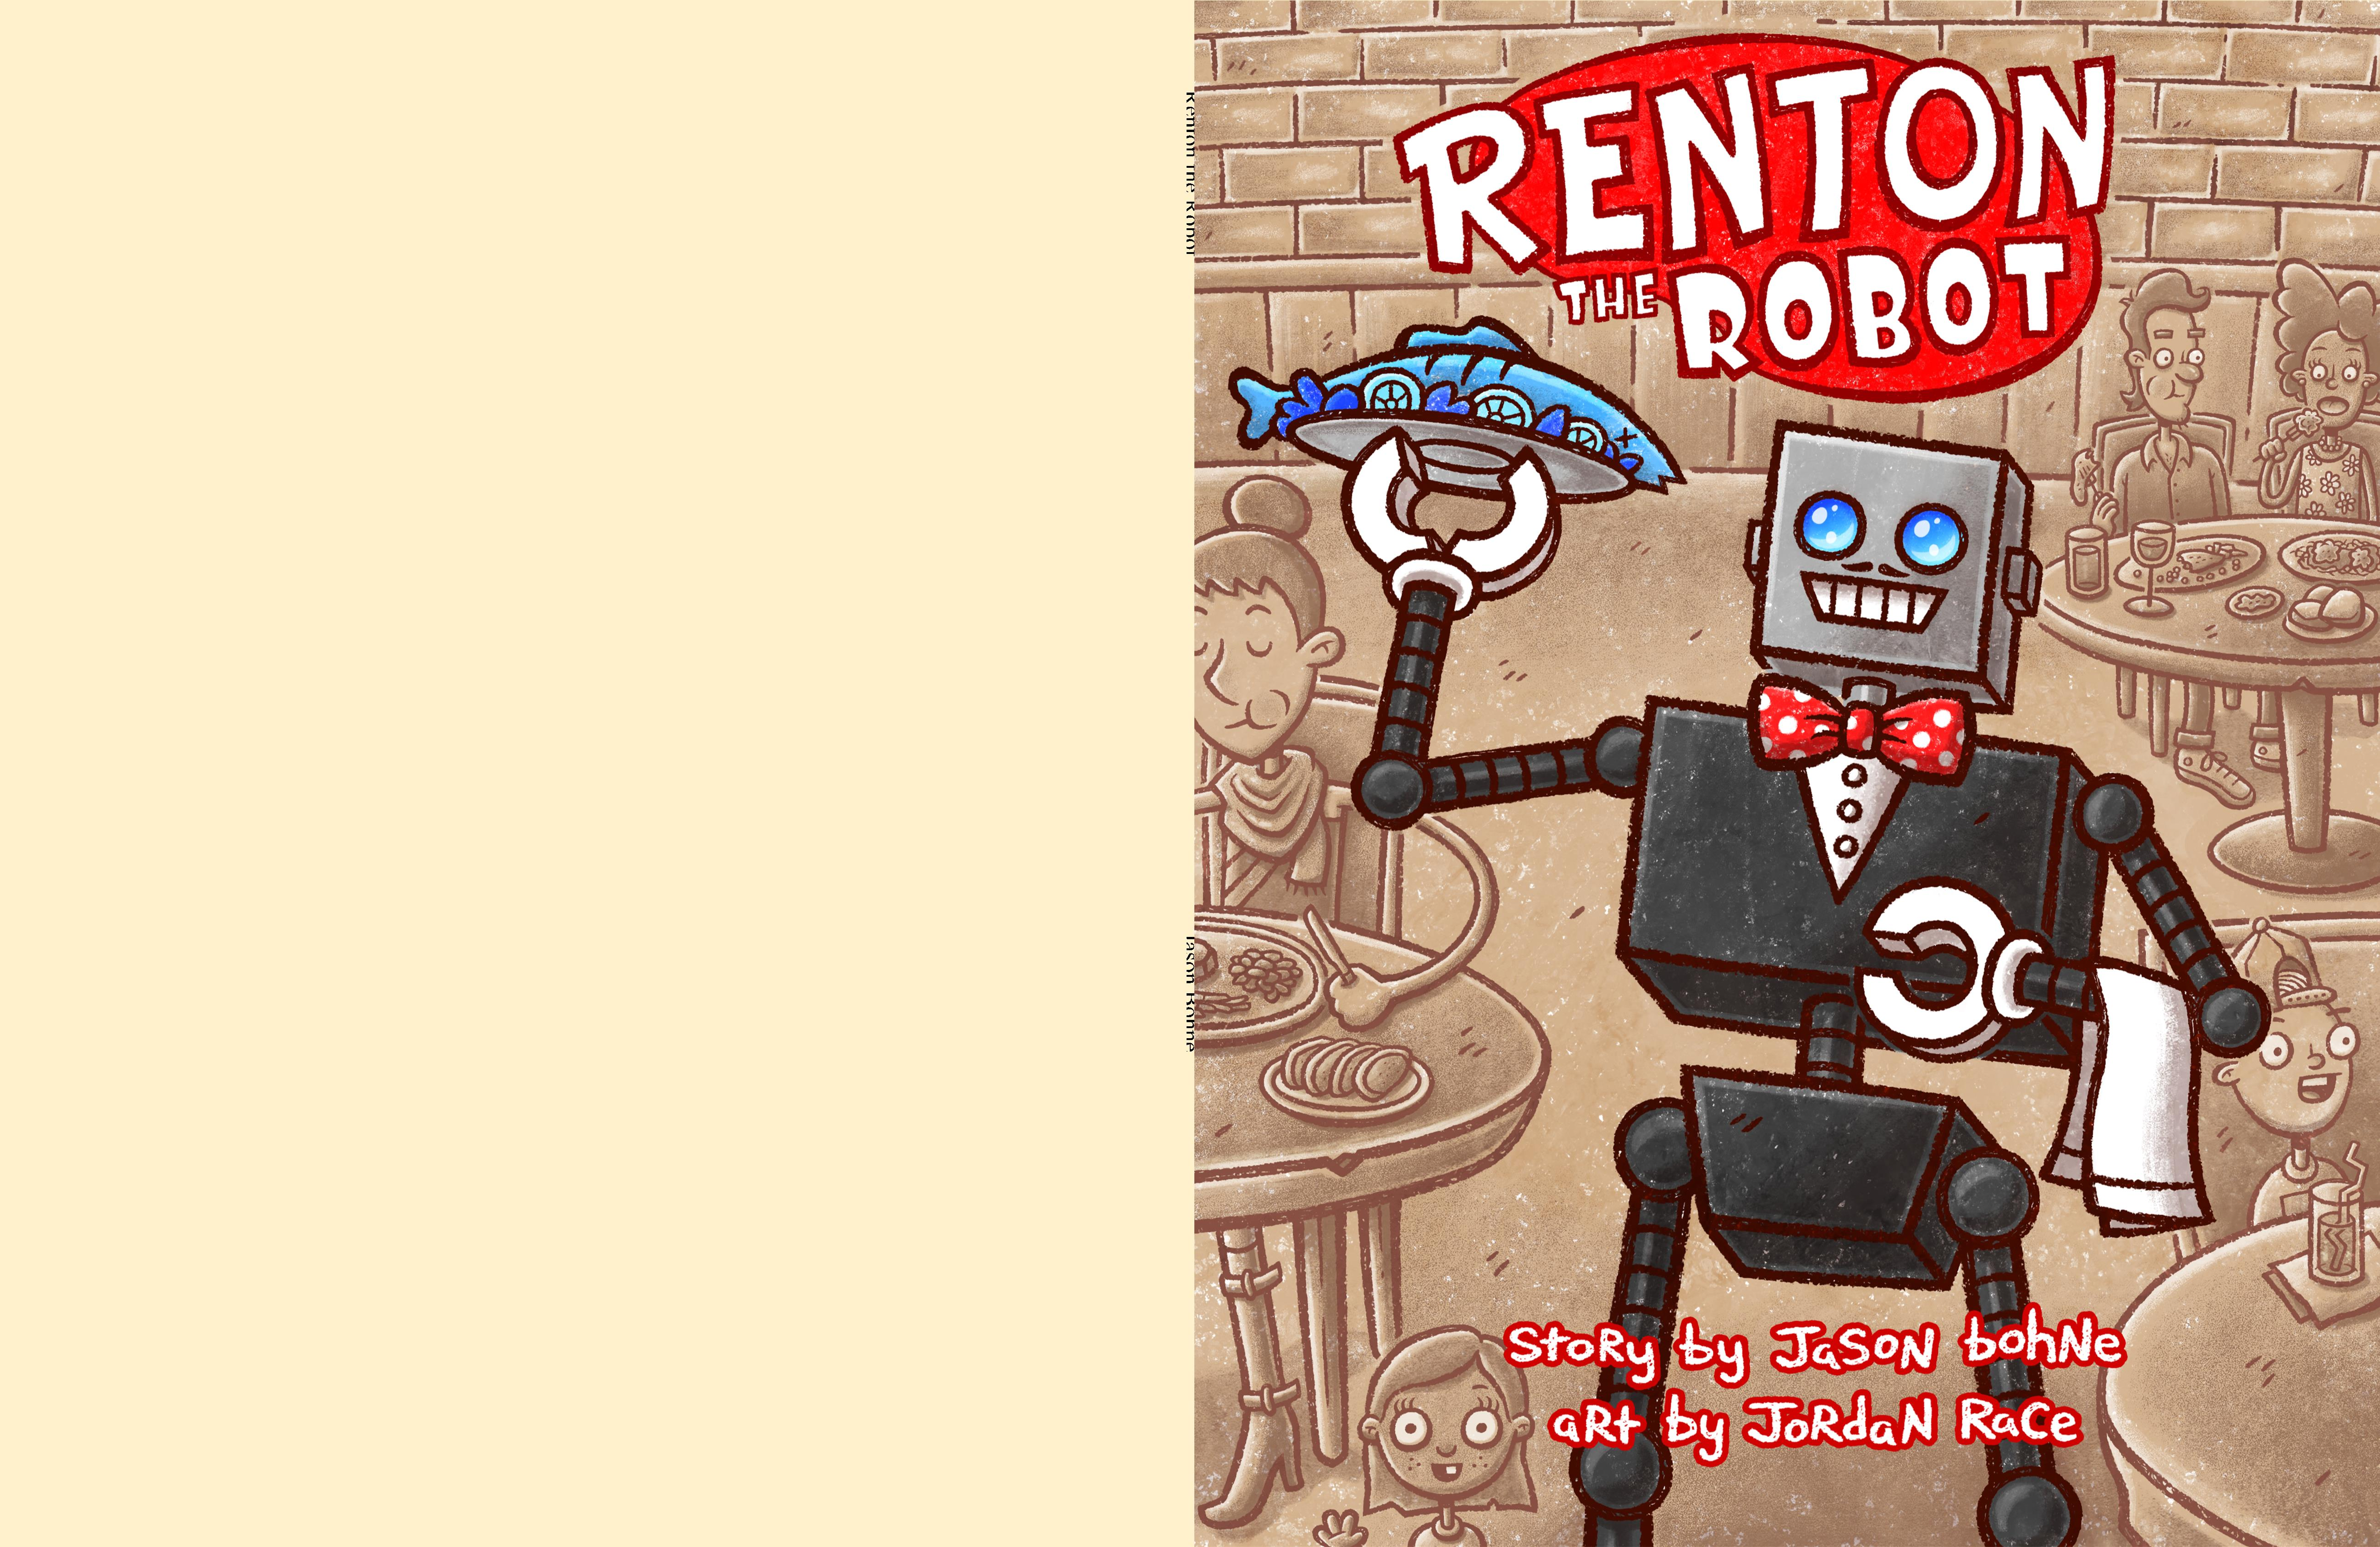 Renton the Robot cover image